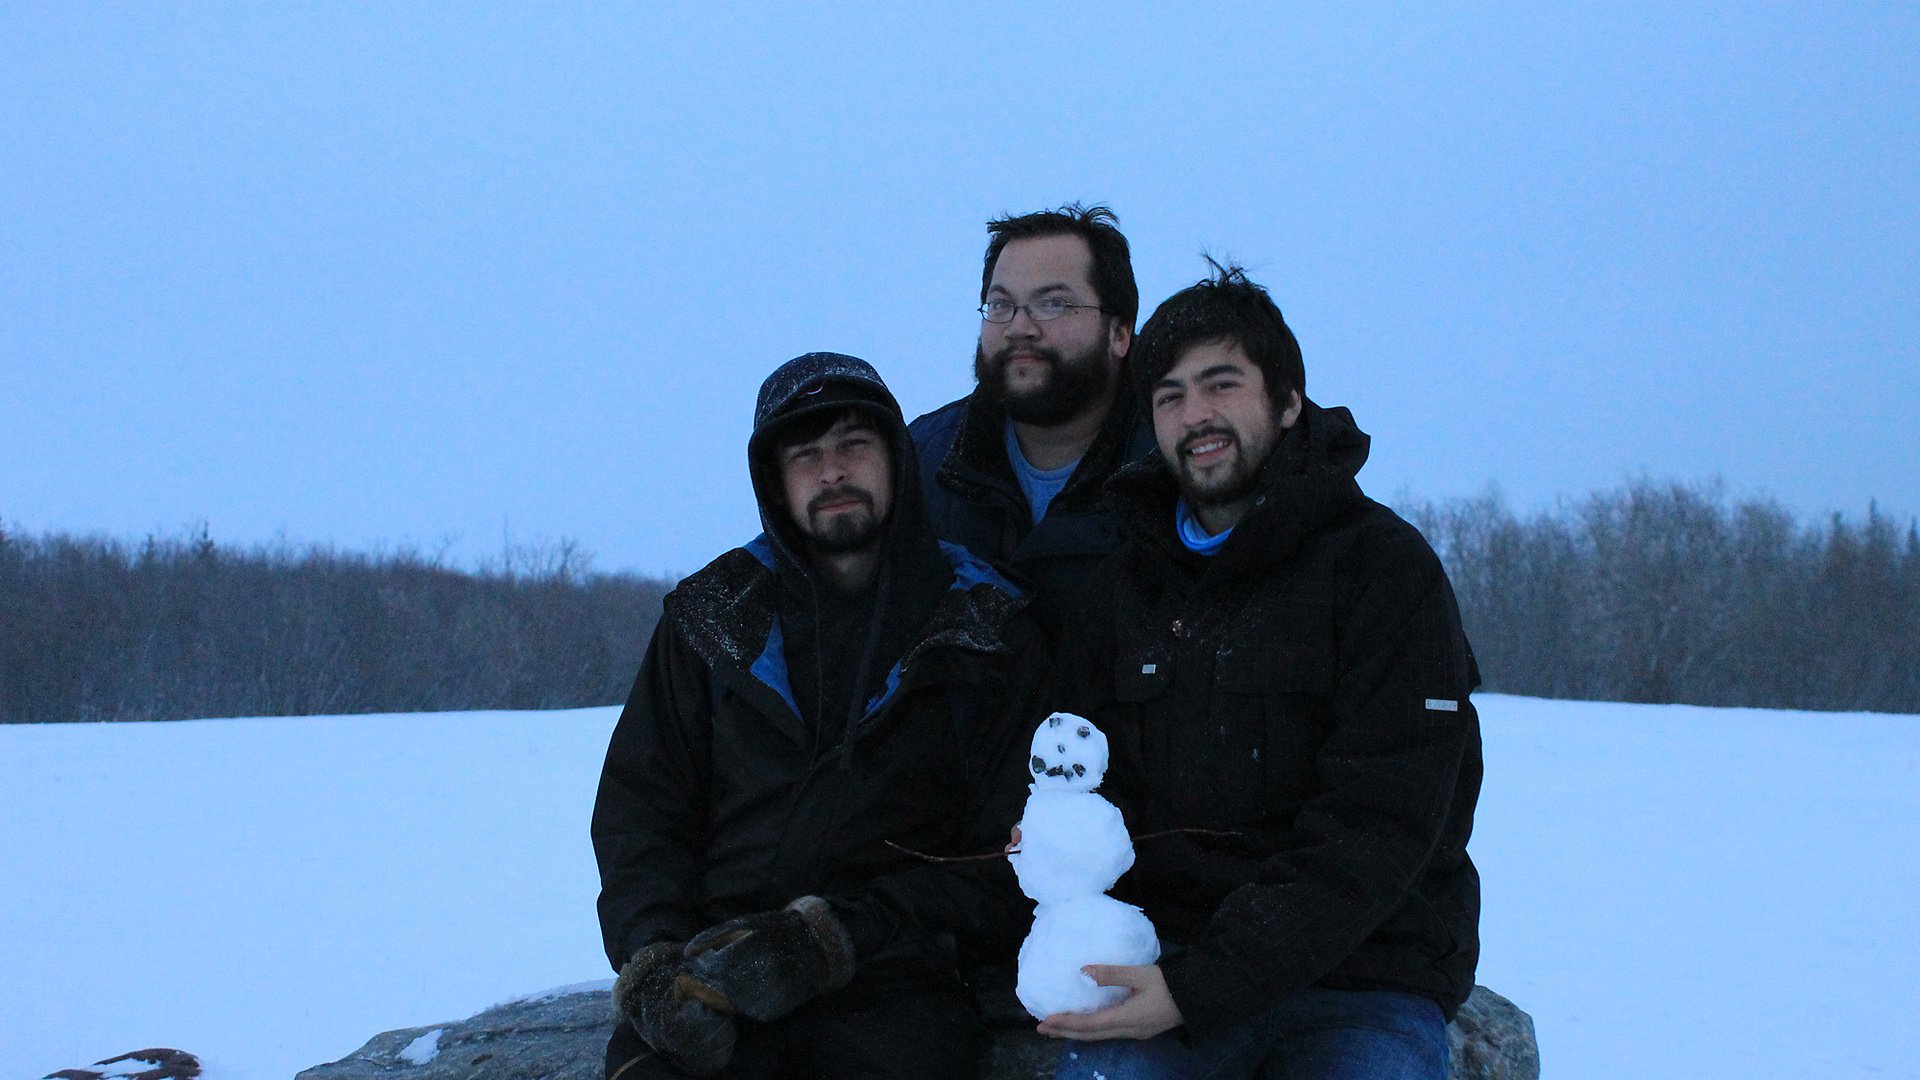 Inuvik Comedy posing in the cold